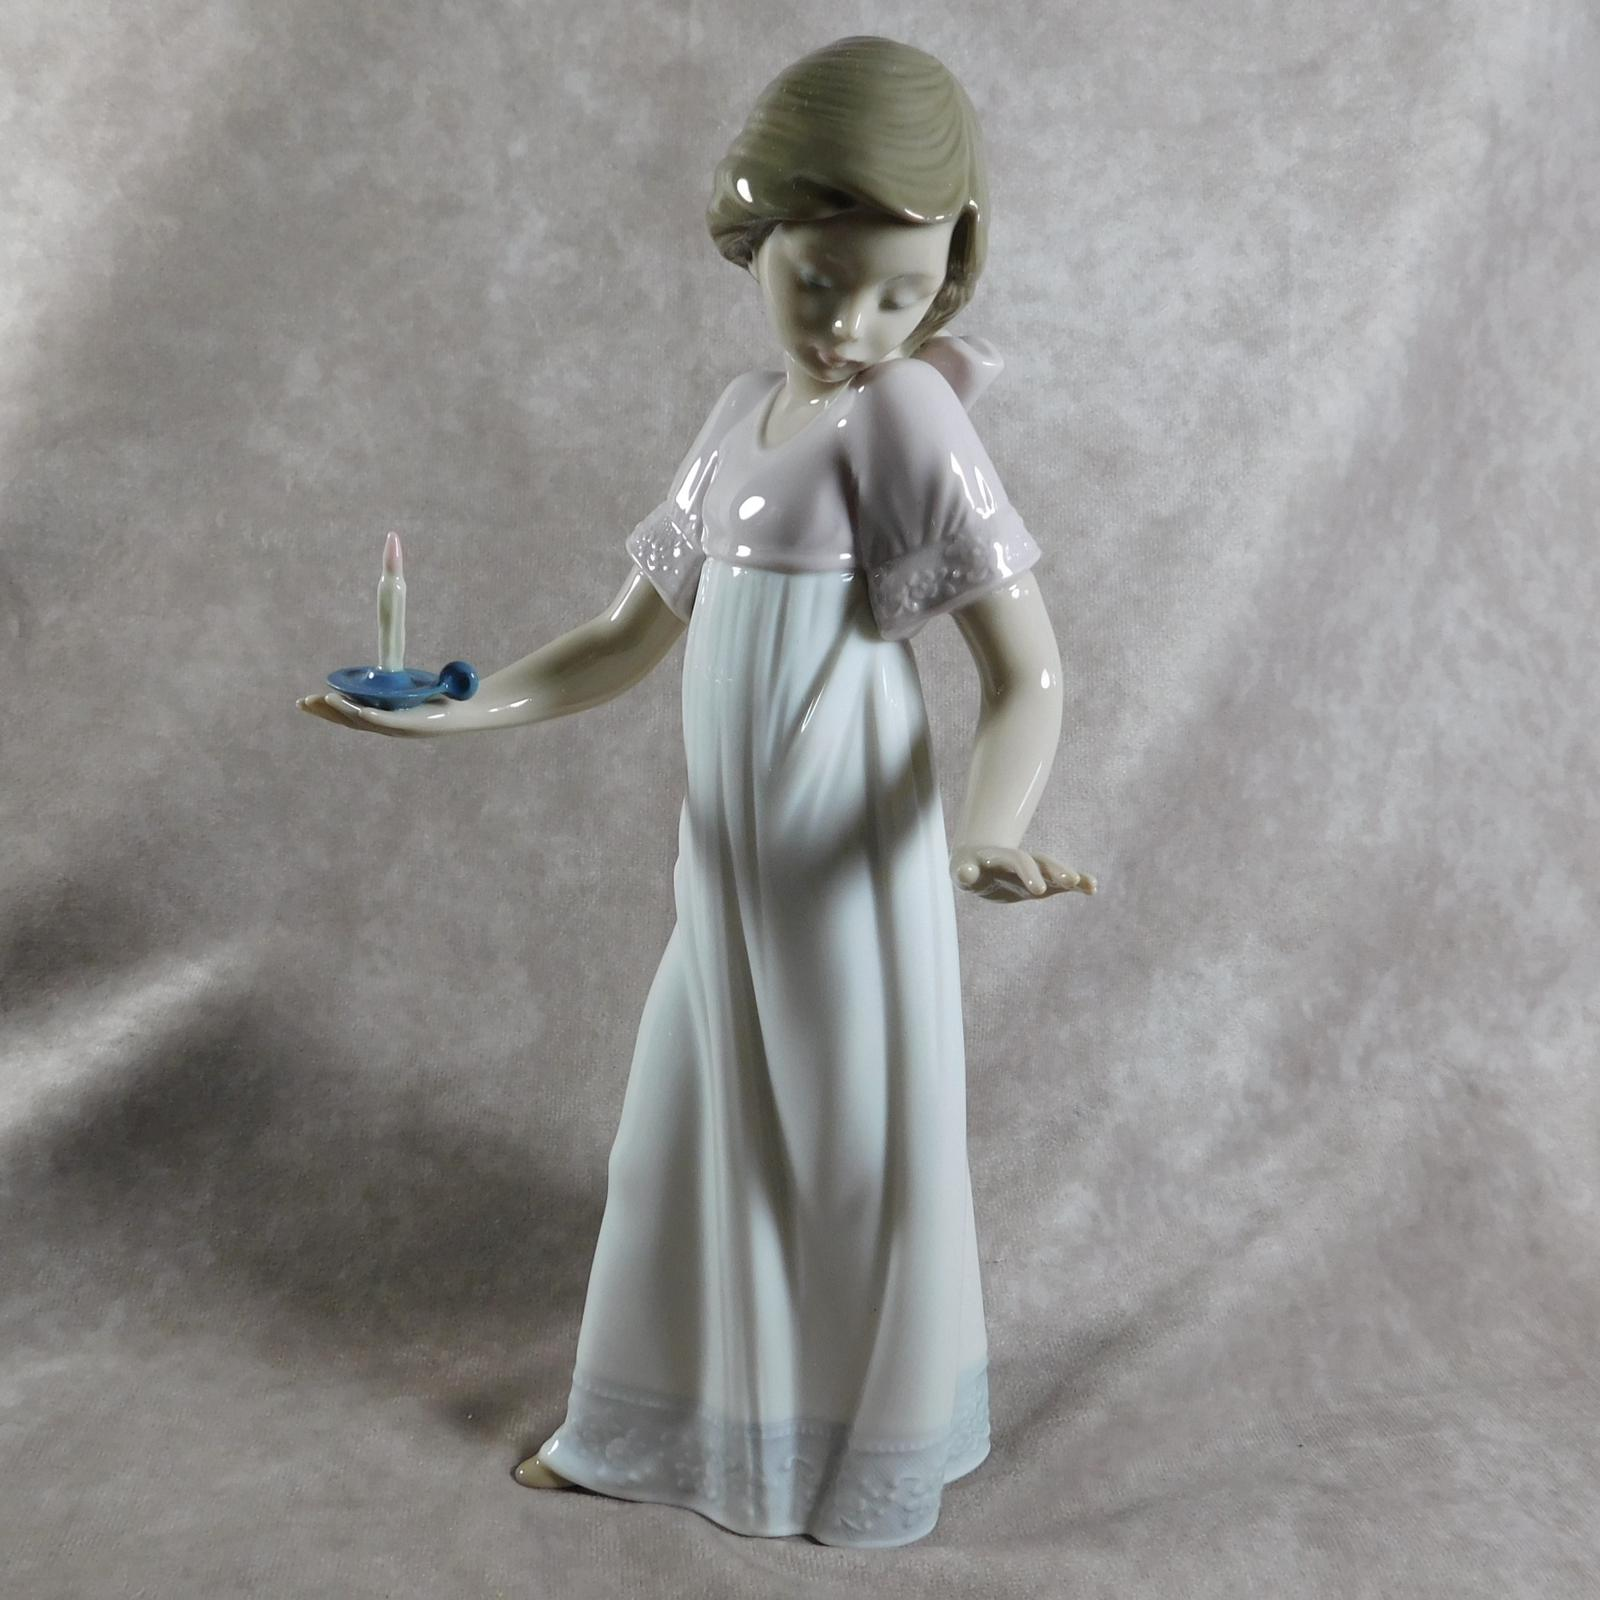 """Nina Con Palmatora"" or ""To Light The Way"" Hand Modelled Porcelain Figure by Nao (1 of 1)"